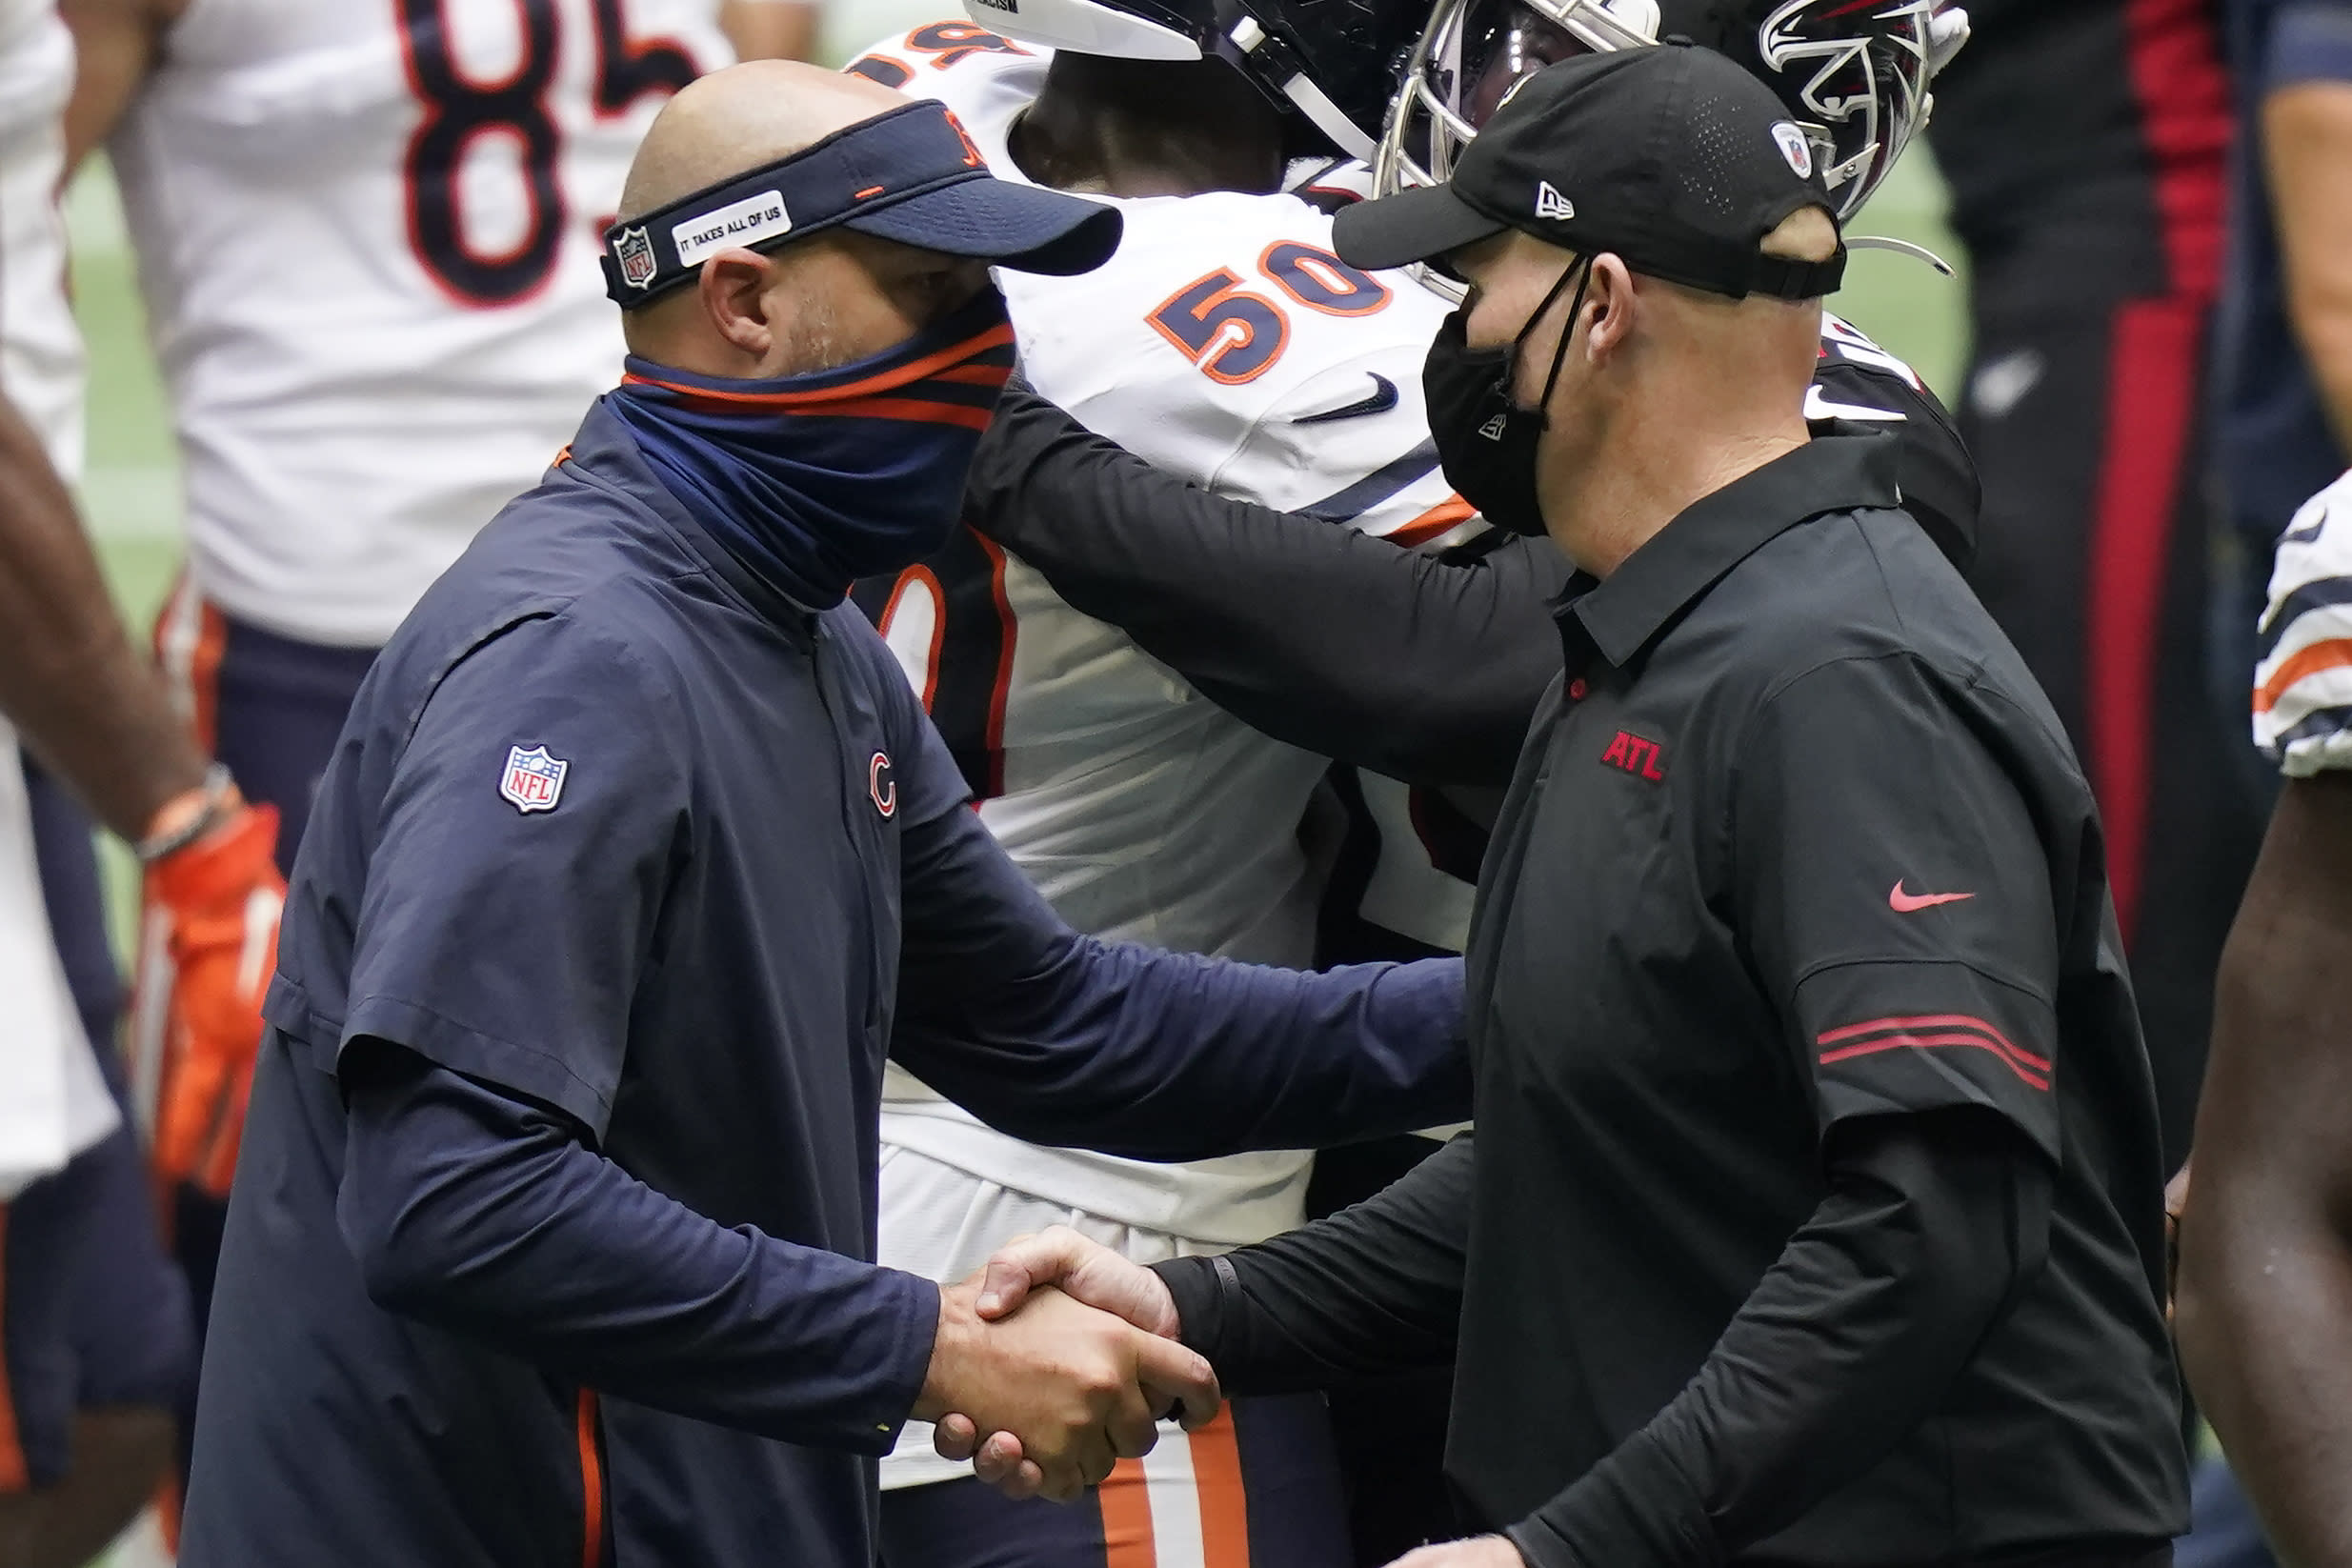 Chicago Bears head coach Matt Nagy speaks with Atlanta Falcons head coach Dan Quinn after an NFL football game, Sunday, Sept. 27, 2020, in Atlanta. (AP Photo/Brynn Anderson)